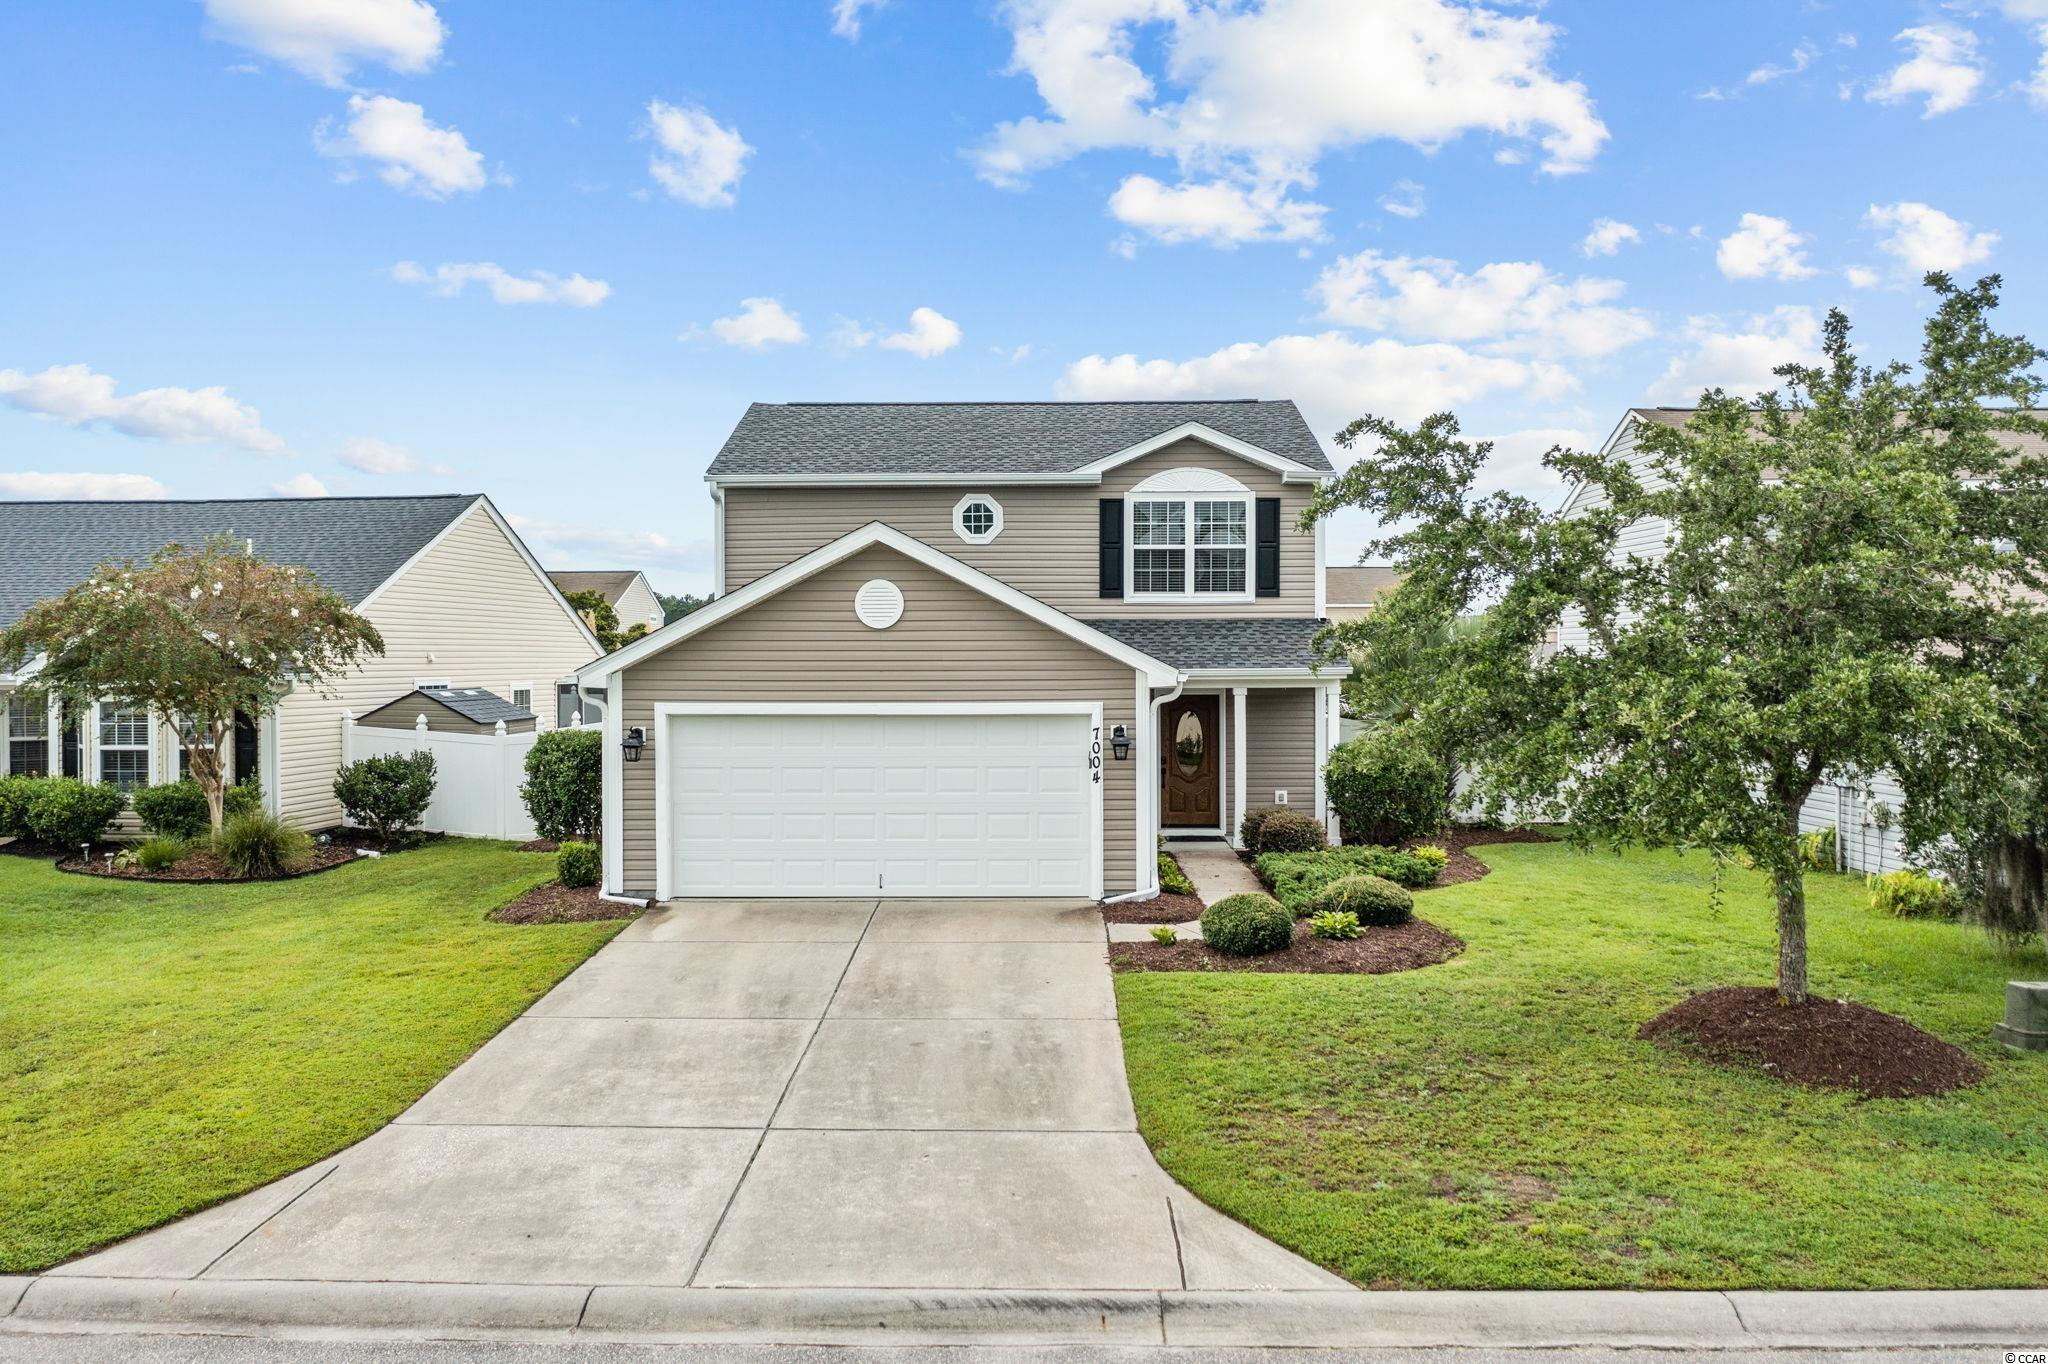 Immaculate three-bedroom two-and-a-half-bathroom home in Avalon in Carolina Forest. This well-maintained home comes with a new roof, HVAC system, and hot water heater that was just installed in 2020. This home also includes upgrades such as engineered hardwood floors throughout the living area downstairs and all the bedrooms upstairs as well as stainless-steel appliances in the kitchen area. The property comes with an irrigation system too. The Avalon community has plenty of amenities which include a pool, soccer field, playground, basketball courts, baseball field, and picnic area. This is a must-see home. Make an appointment to view this home today!